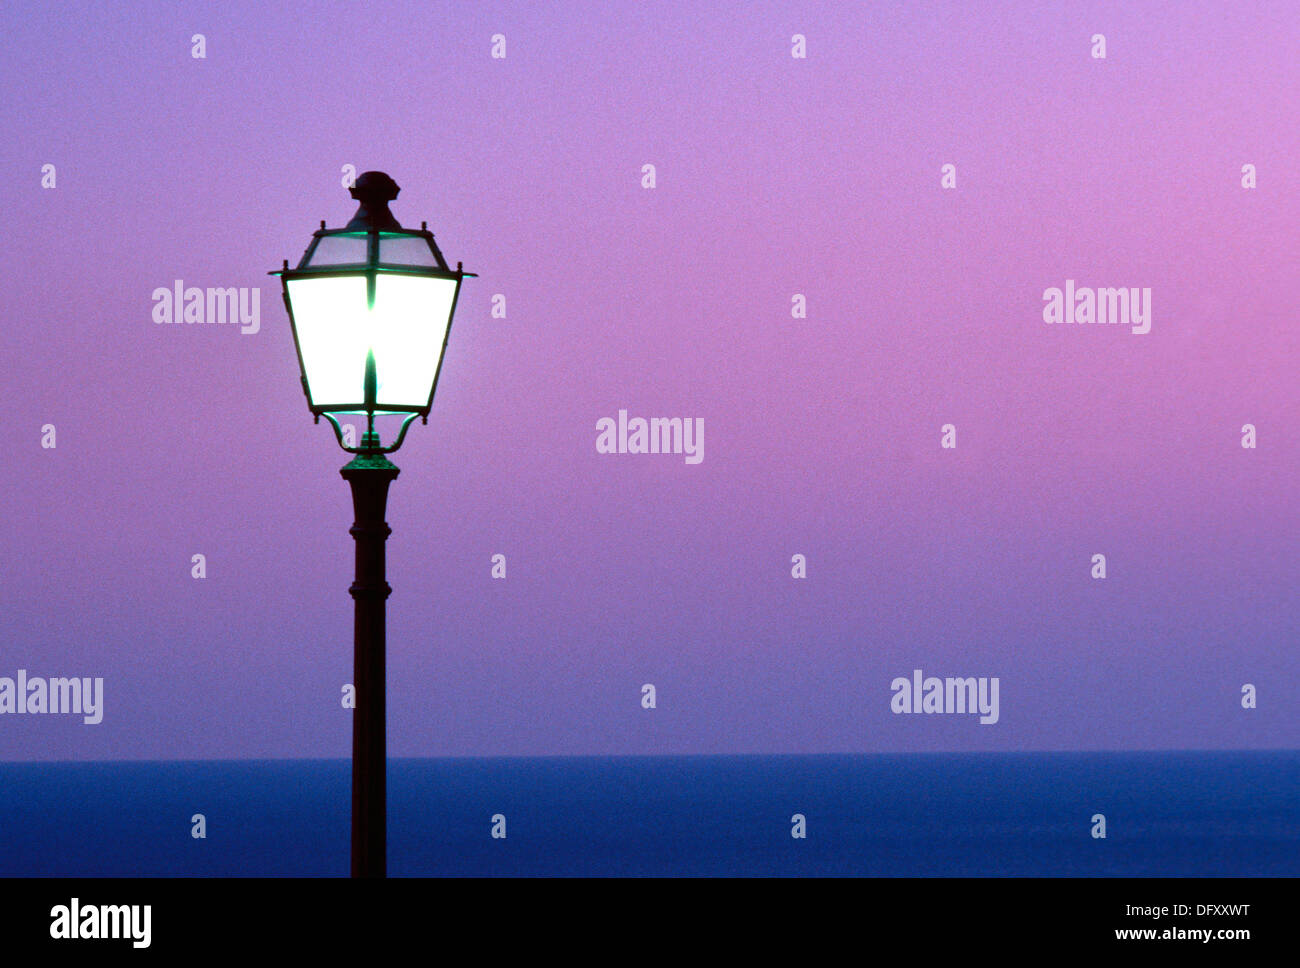 Lantern in the blue hour by the sea - Stock Image